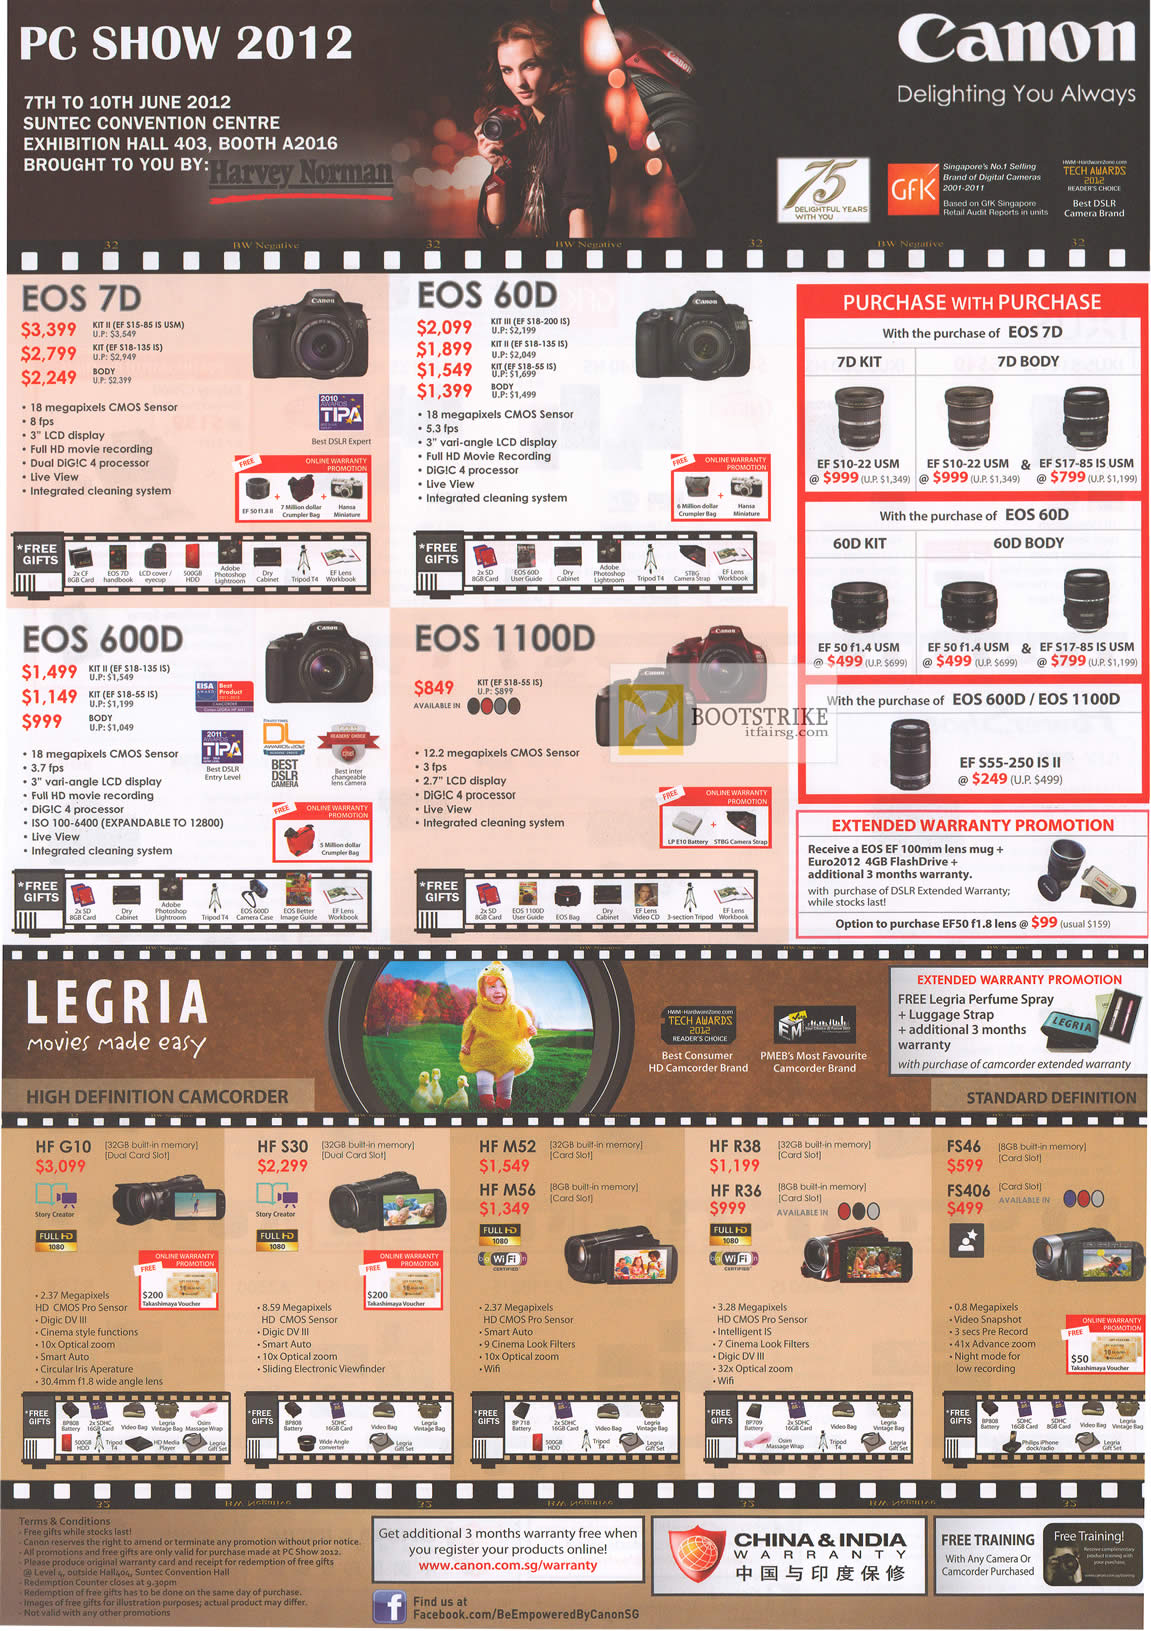 PC SHOW 2012 price list image brochure of Canon Digital Cameras DSLR EOS 7D, EOS 60D, EOS 600D, EOS 1100D, Video Camcorders HF G10, HFS30, HFM52, HFM56, HF R38, HF R36